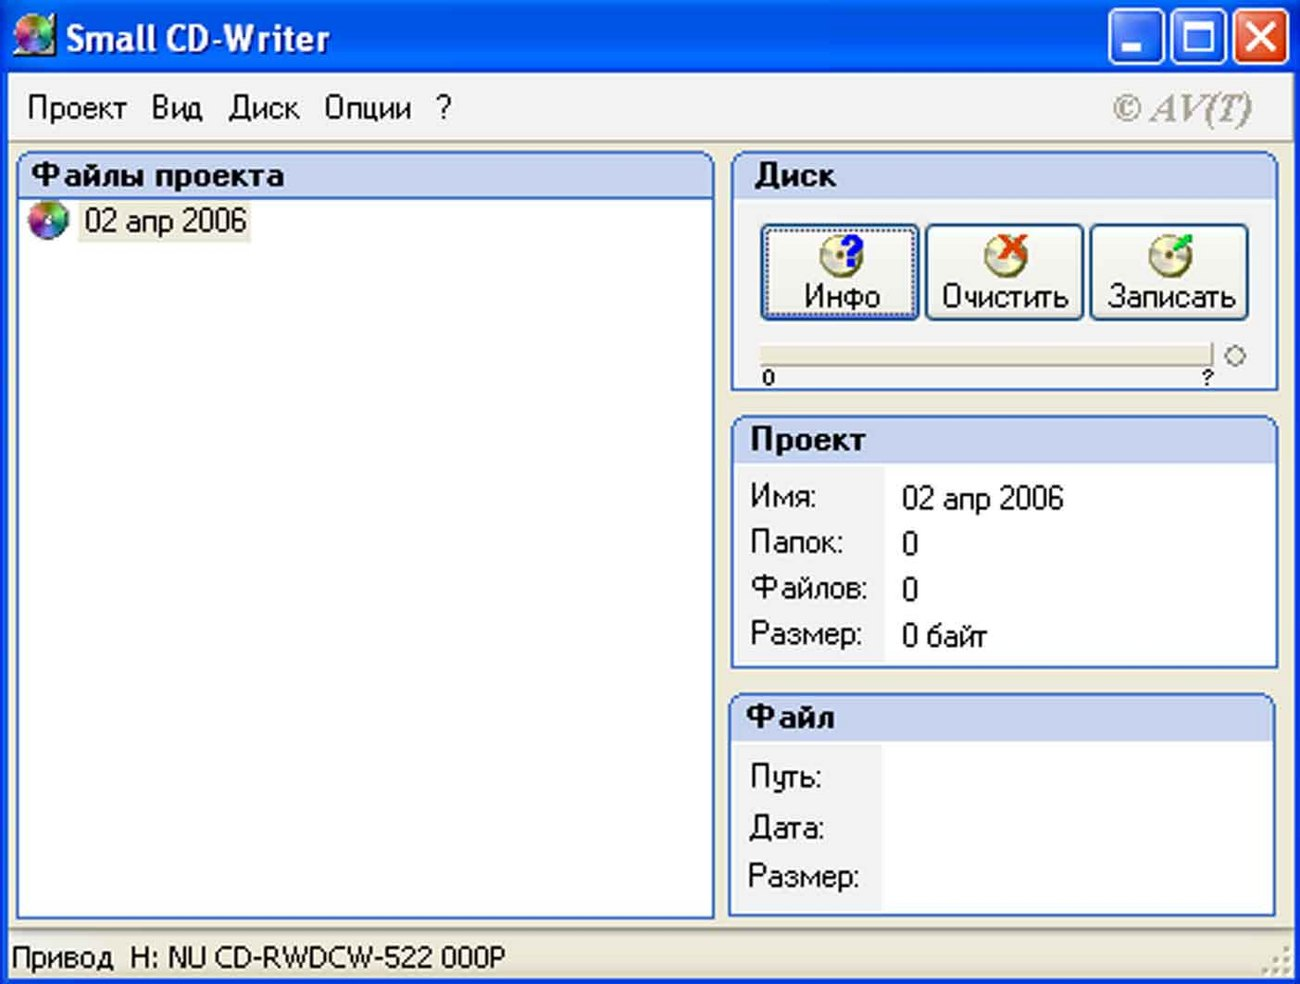 Small CD-Writer